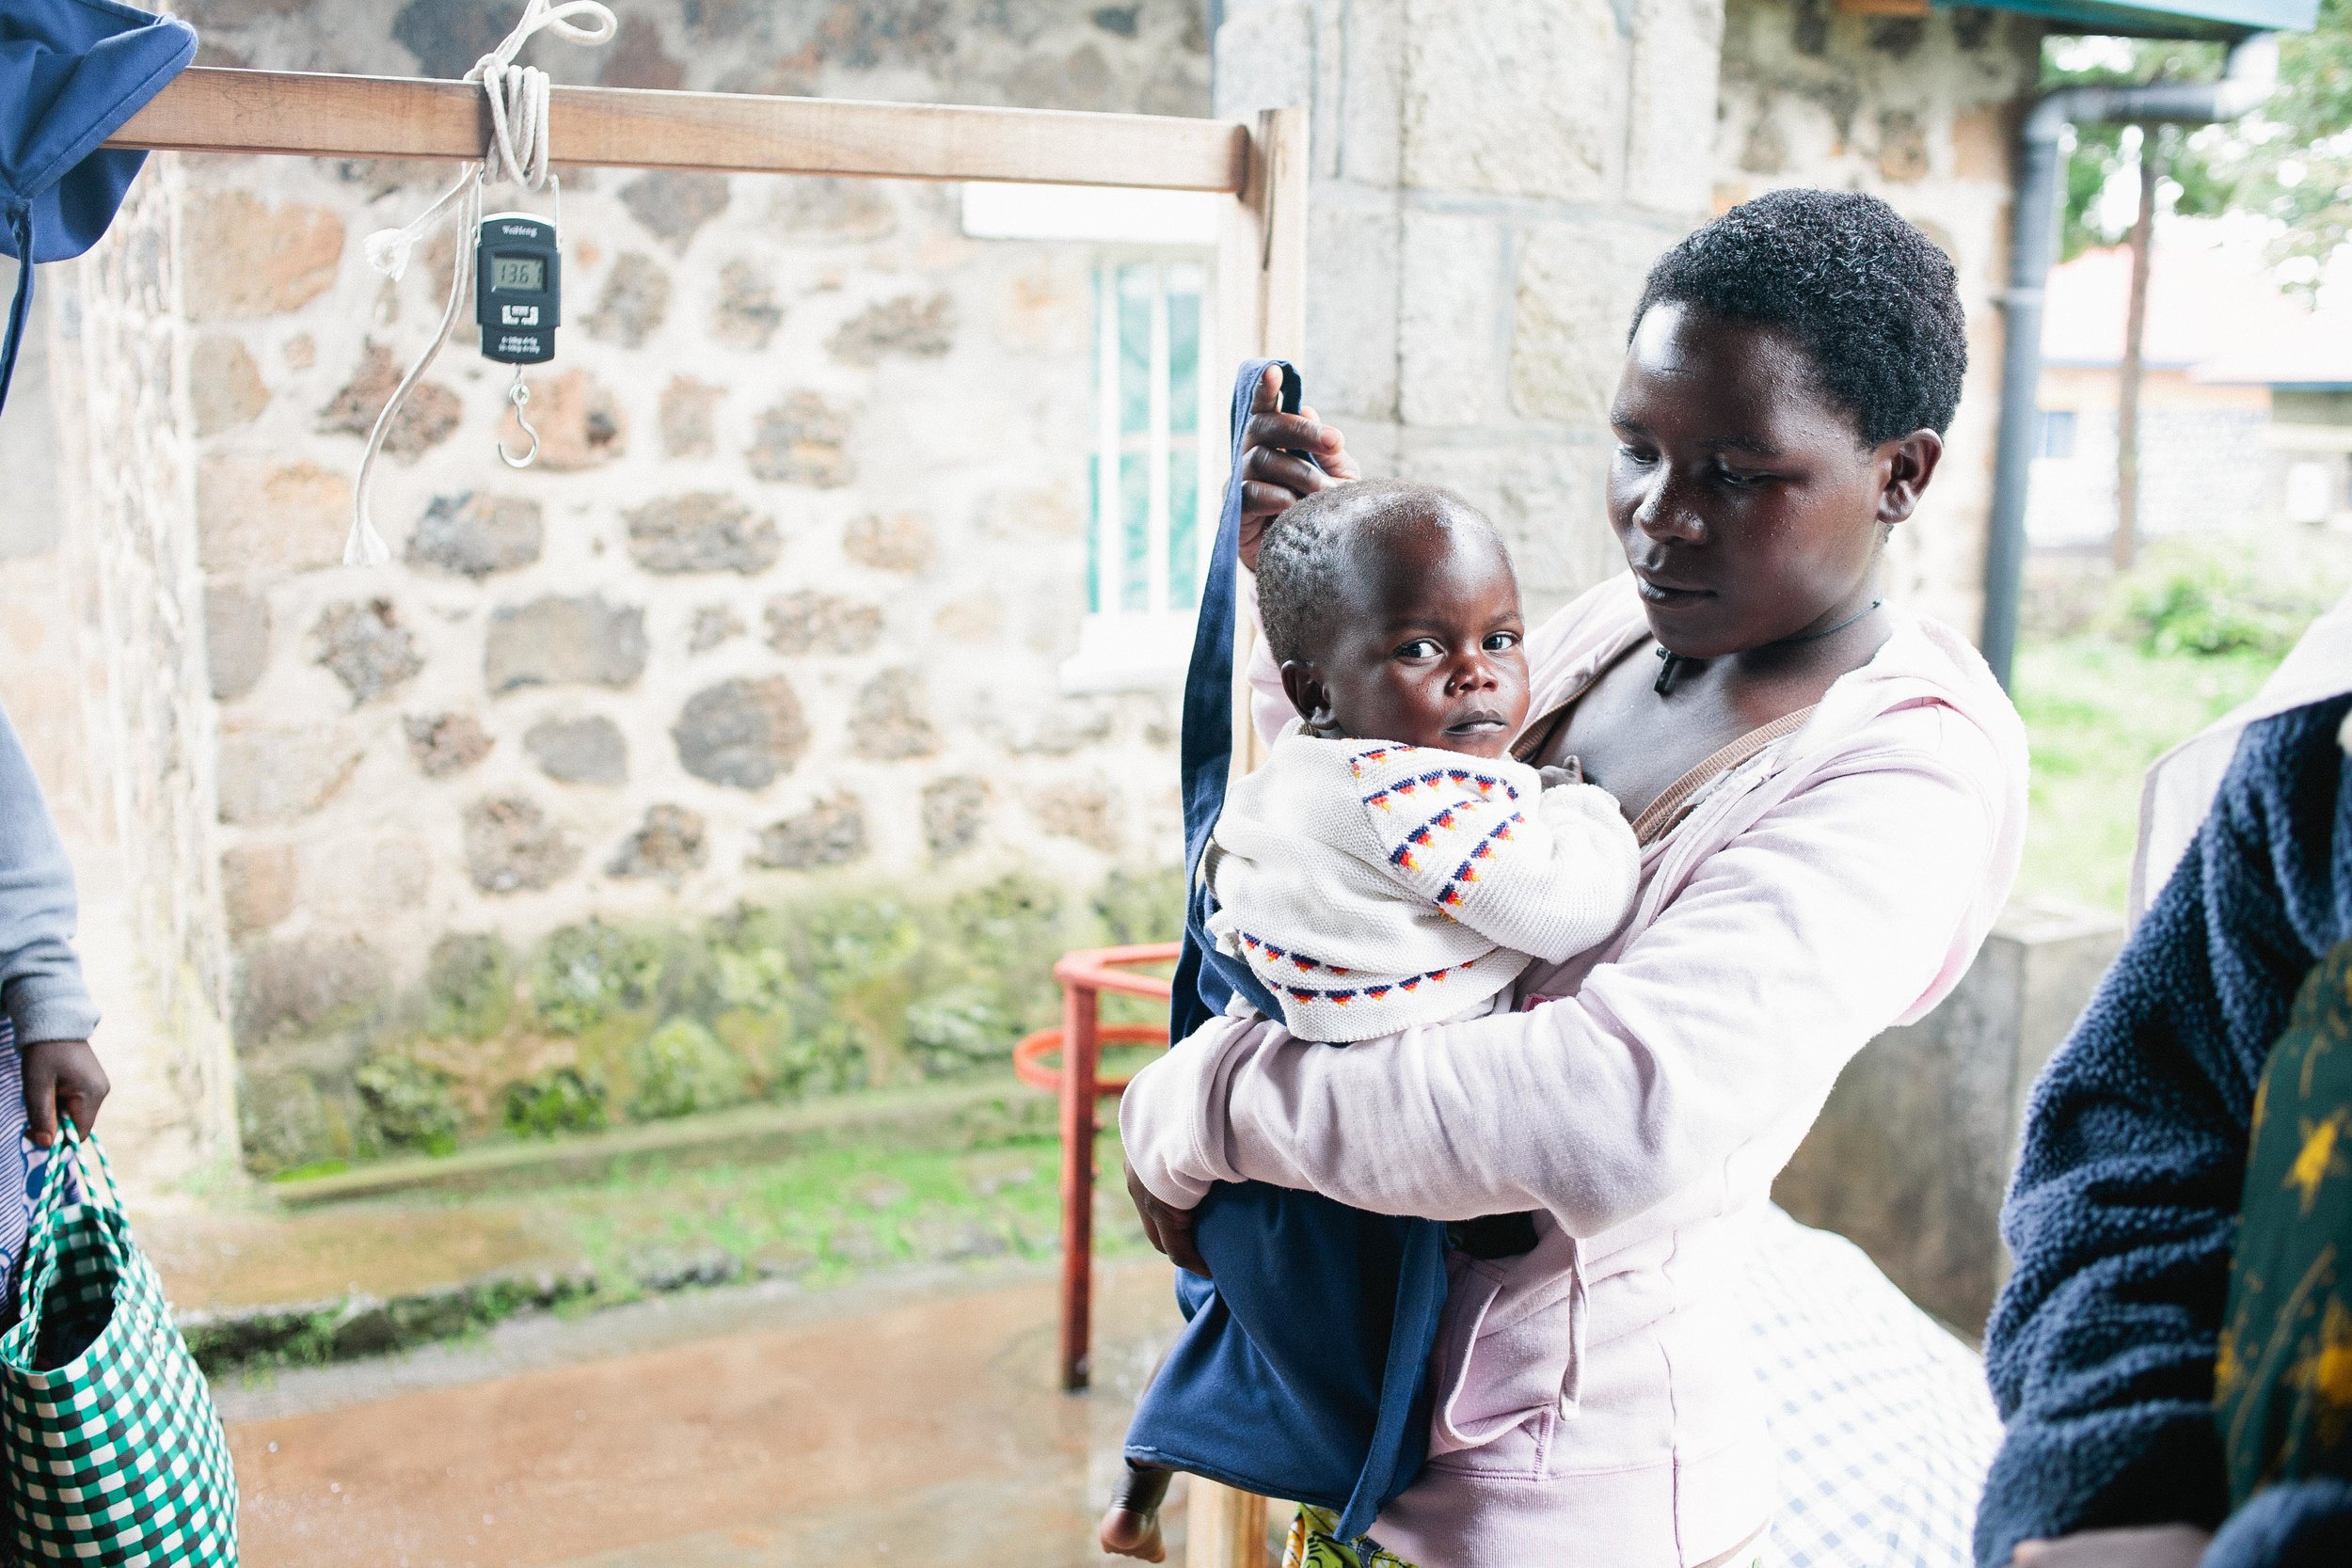 A caregiver helps weigh her child